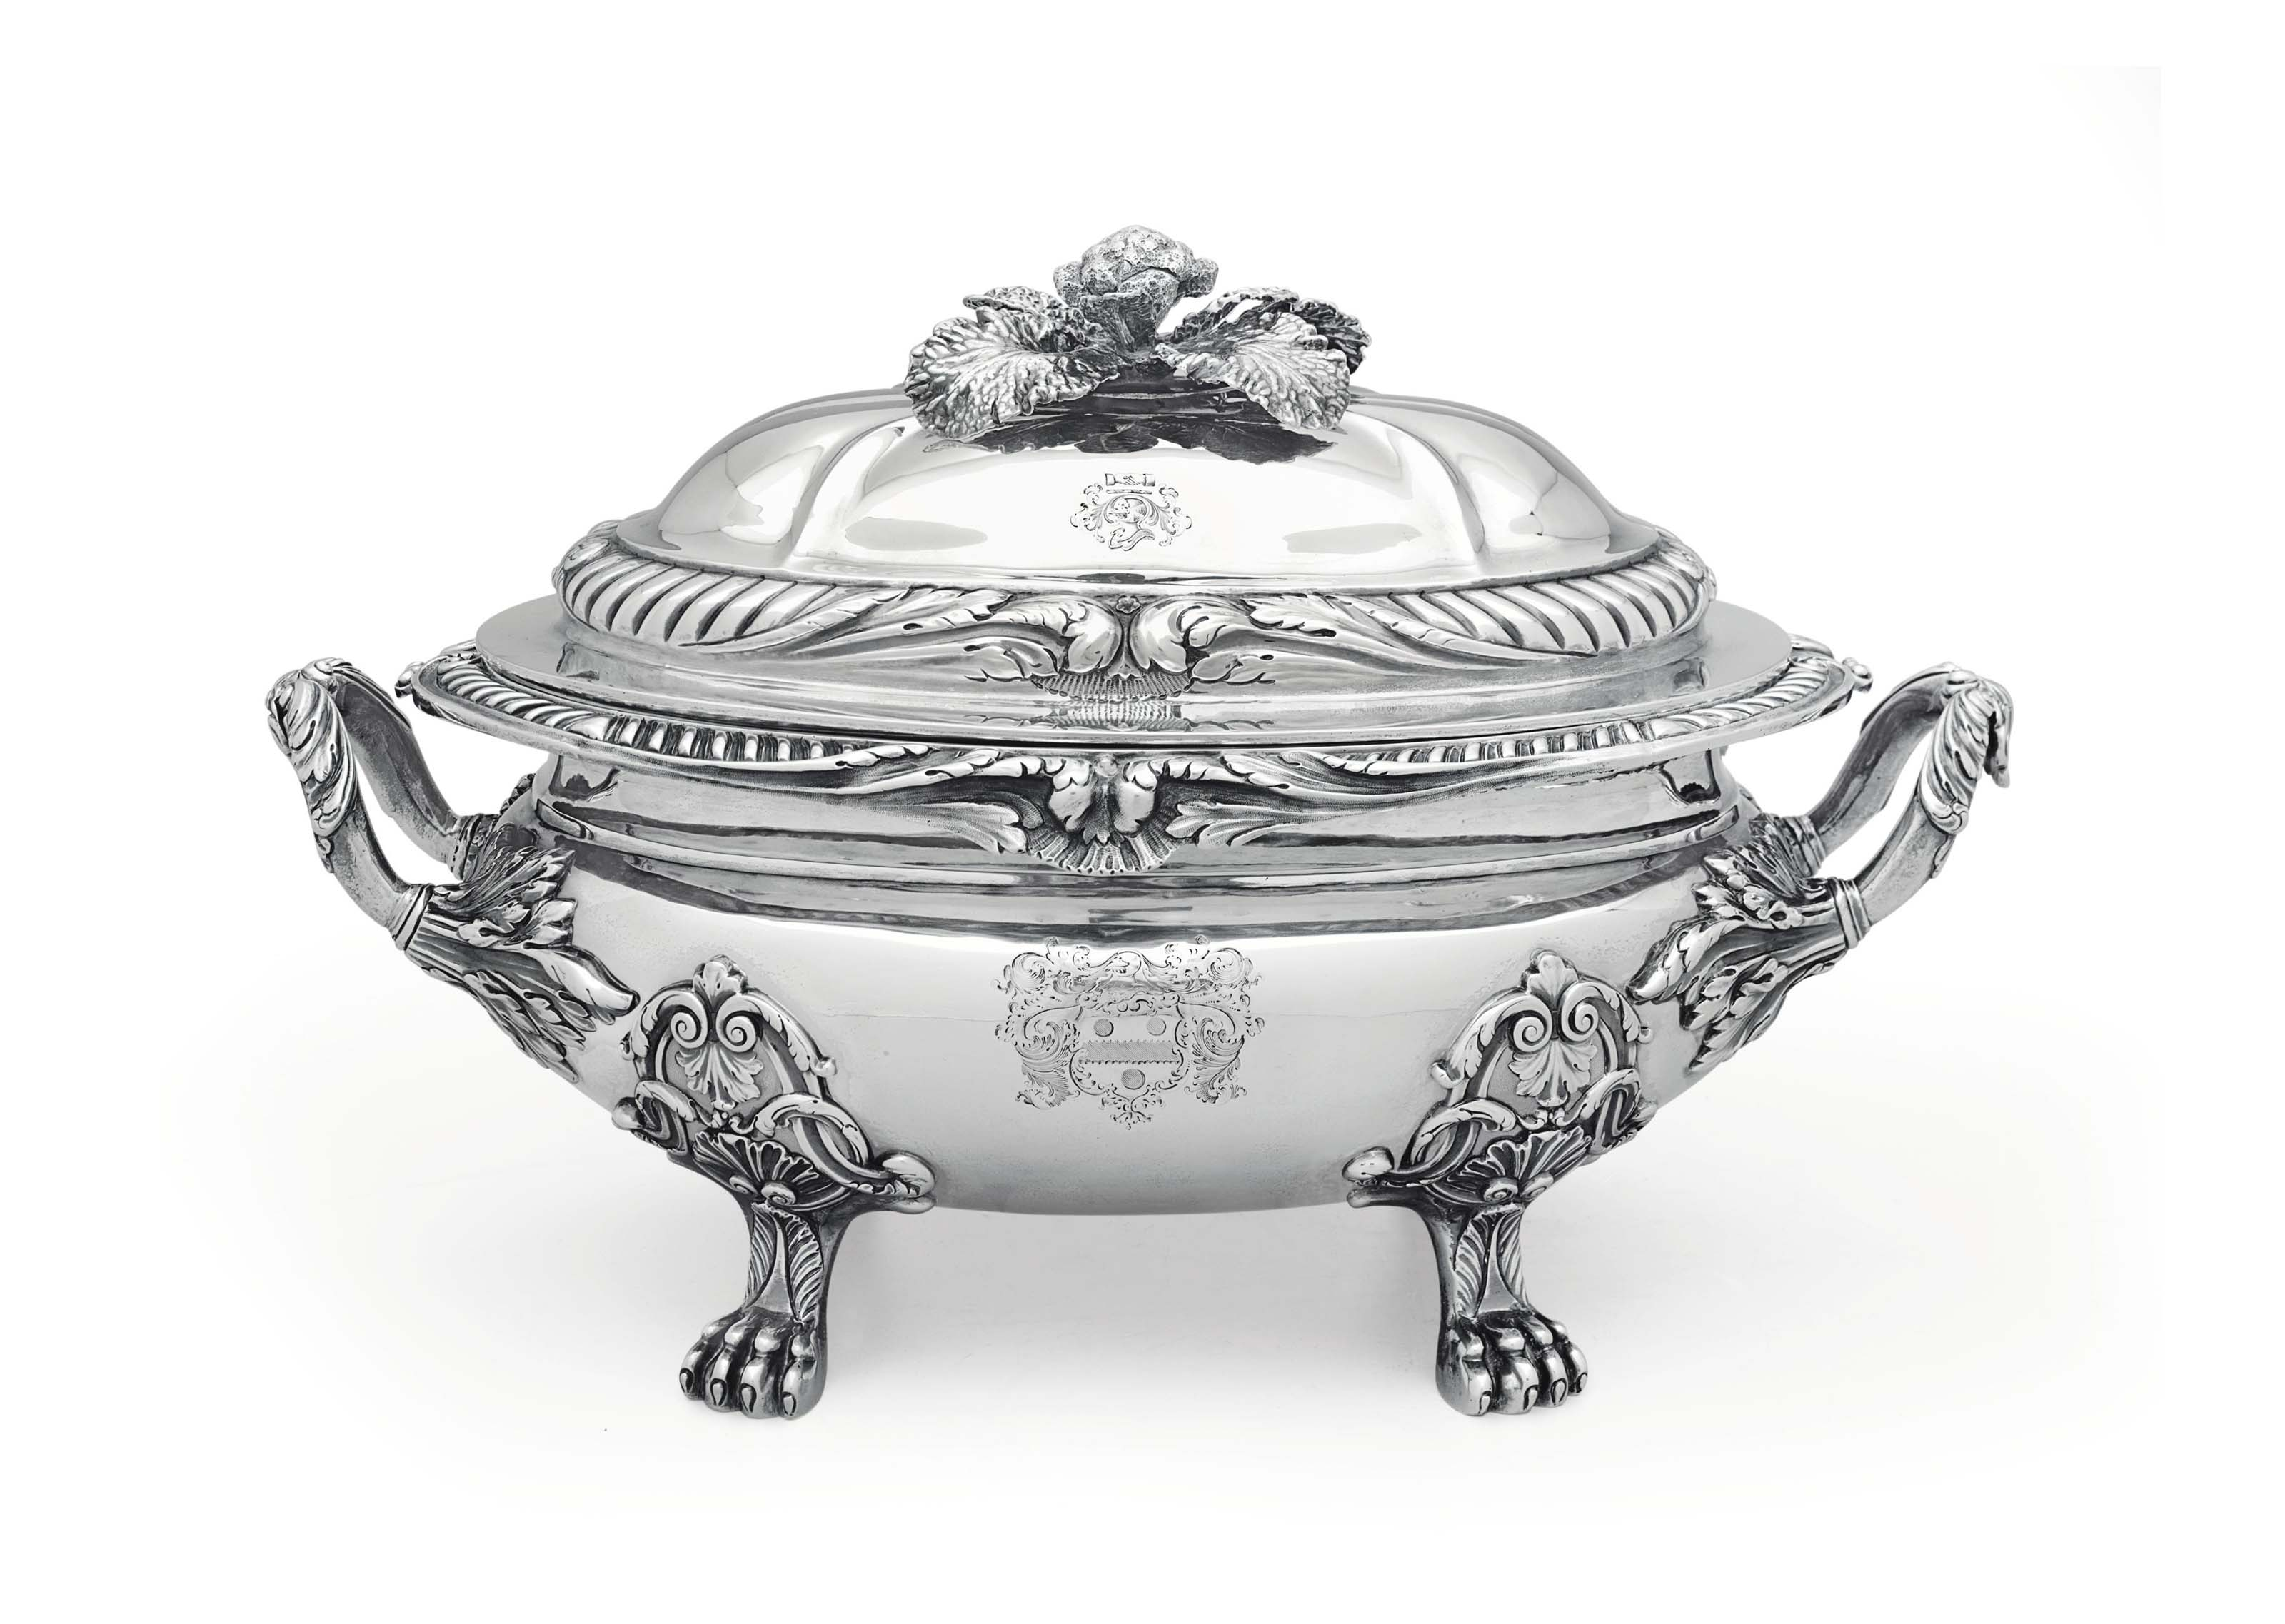 A GEORGE IV SILVER SOUP TUREEN AND COVER